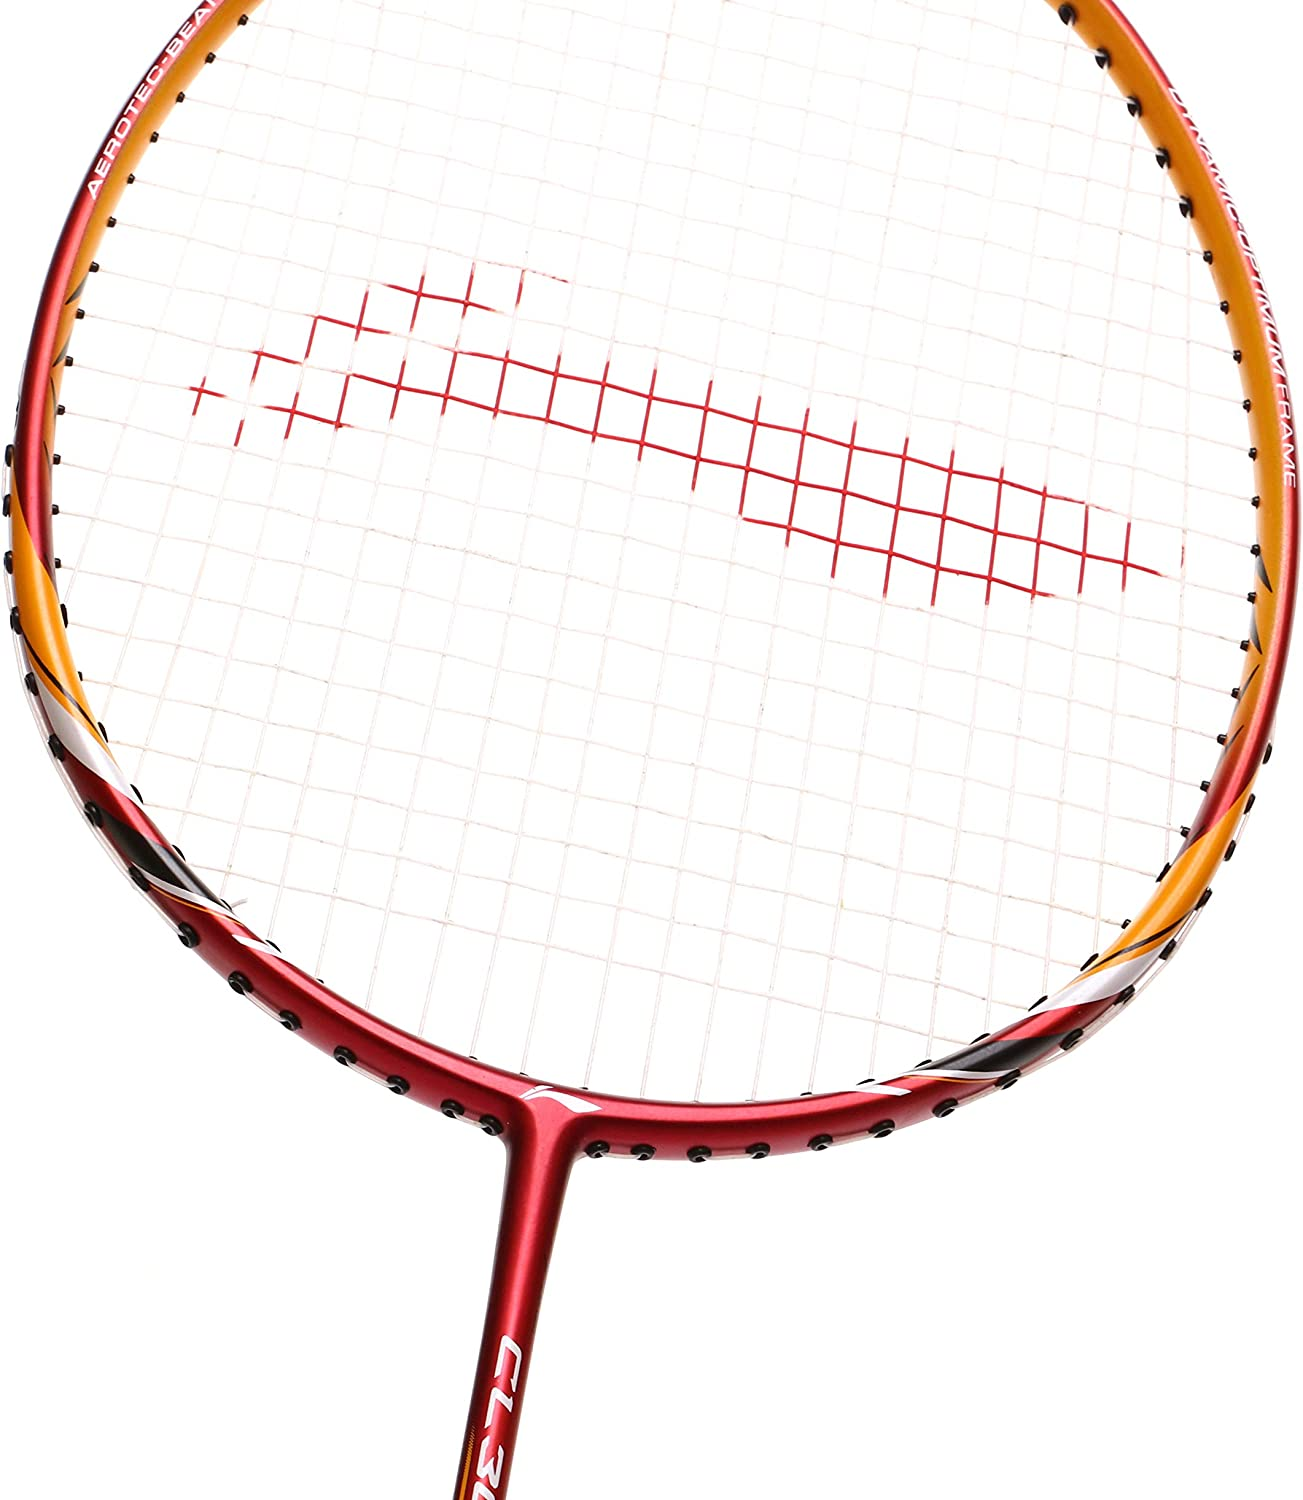 Li-Ning Badminton Racket CHEN Long Signature Series Player Edition Light Weight Carbon Graphite Shaft 79 GMS with Full Carrying Bag Cover